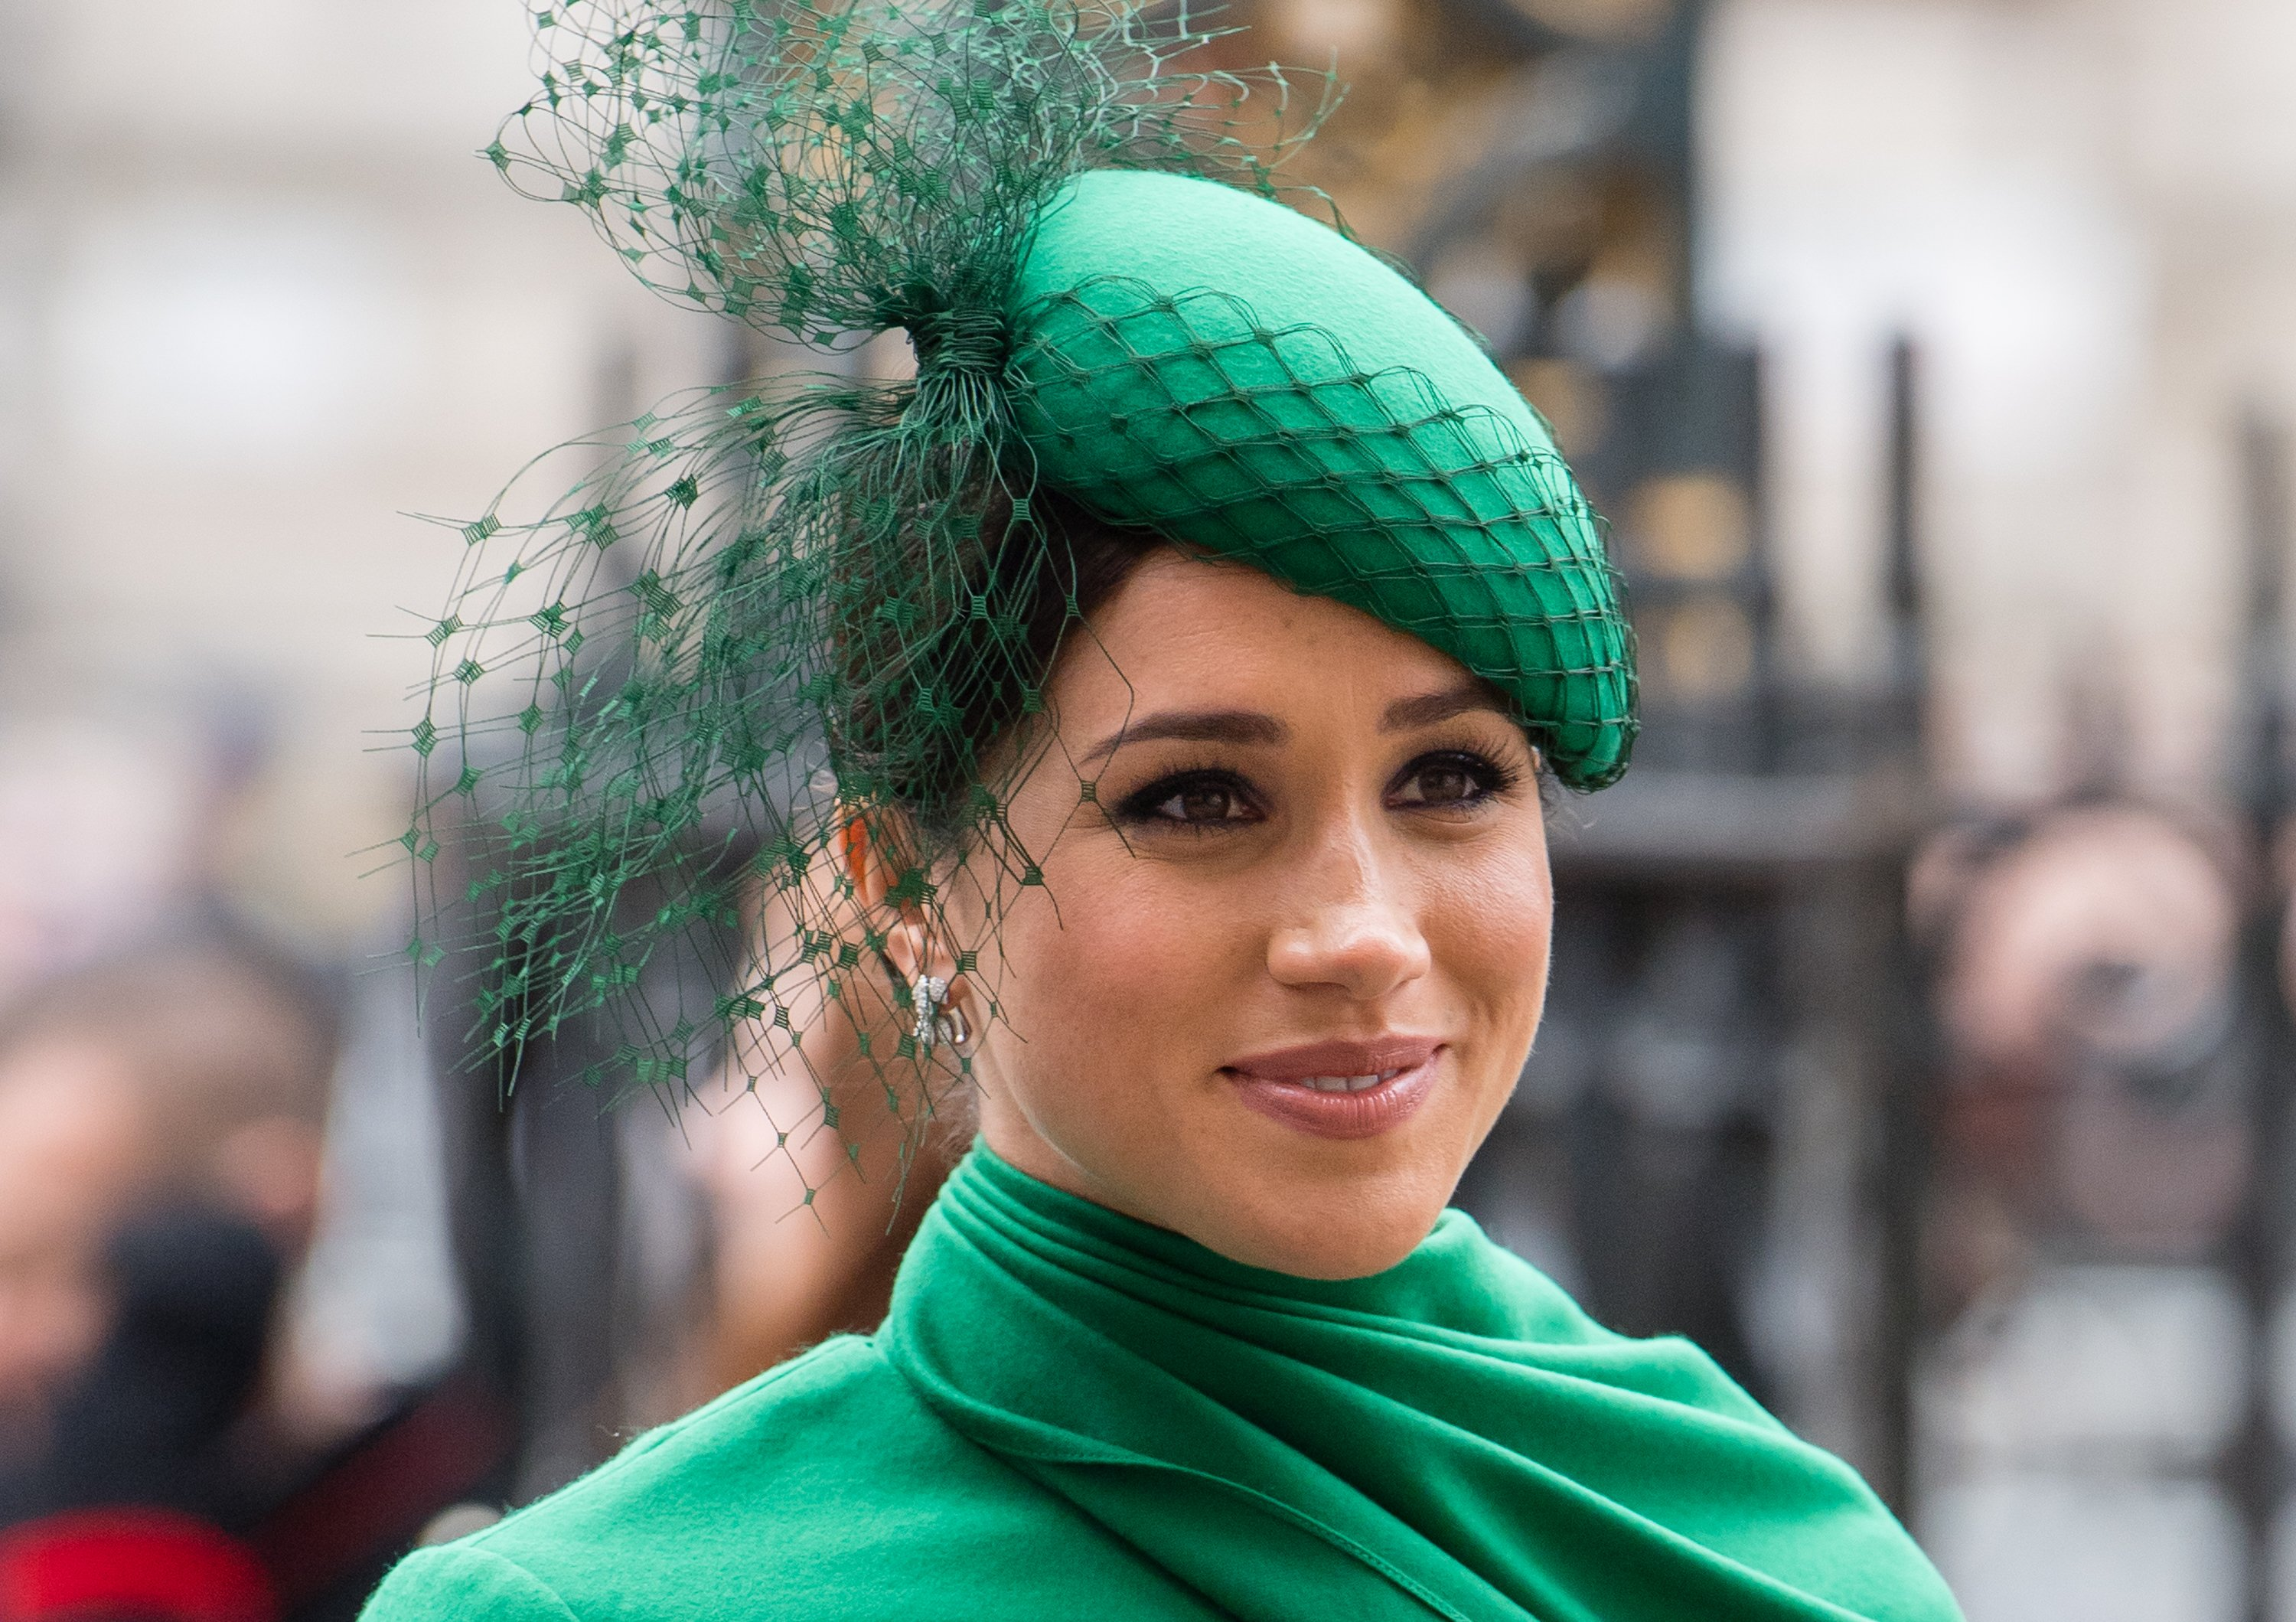 Meghan, Duchess of Sussex at the Commonwealth Day Service on March 09, 2020 in London, England. | Source: Getty Images